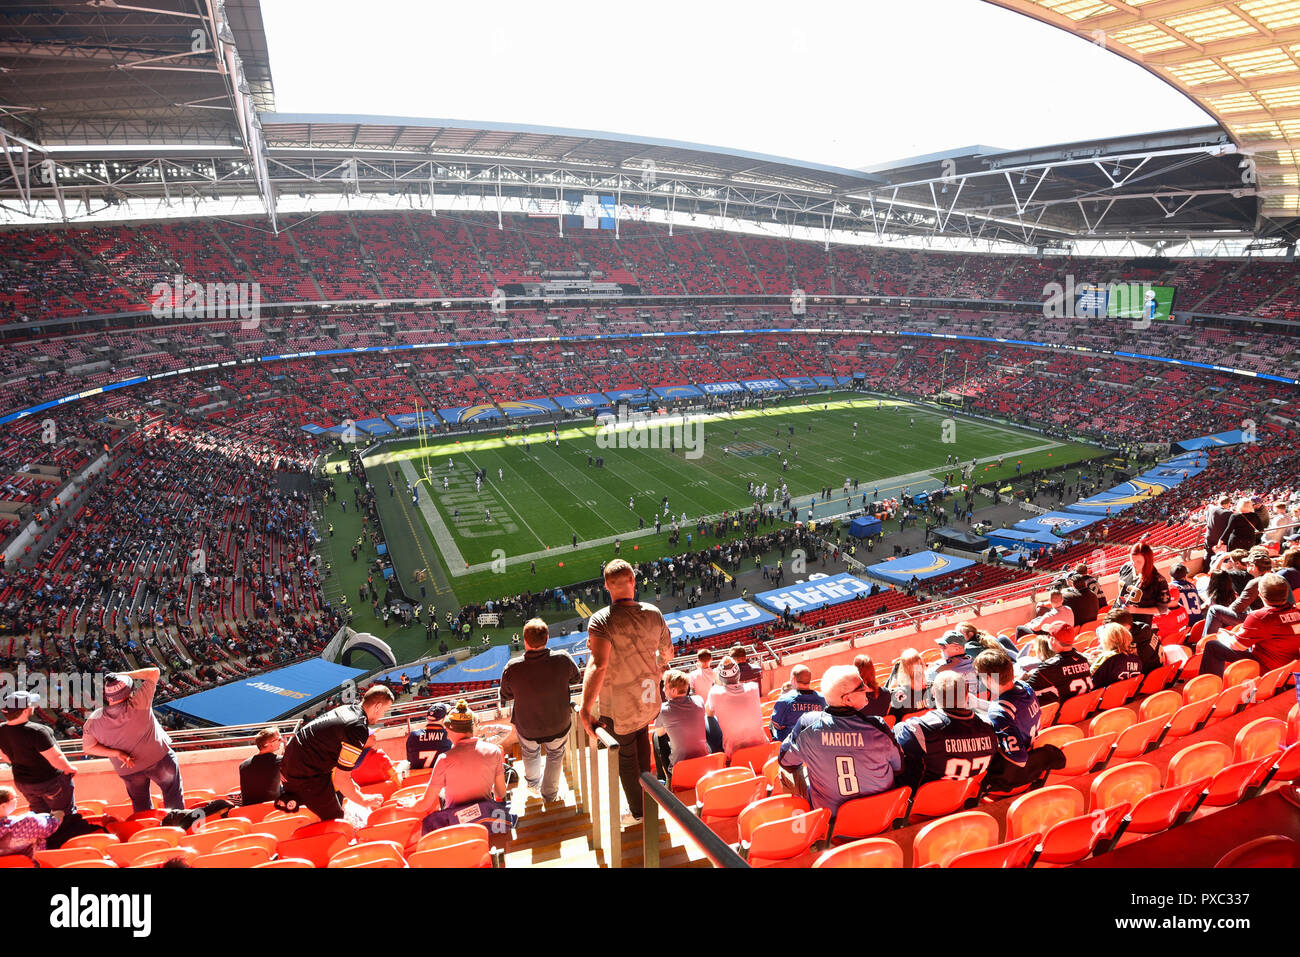 London, UK.  21 October 2018. Fans arrive for the Tennessee Titans at Los Angeles Chargers NFL game at Wembley Stadium, the second of the NFL London 2018 games.  Credit: Stephen Chung / Alamy Live News - Stock Image